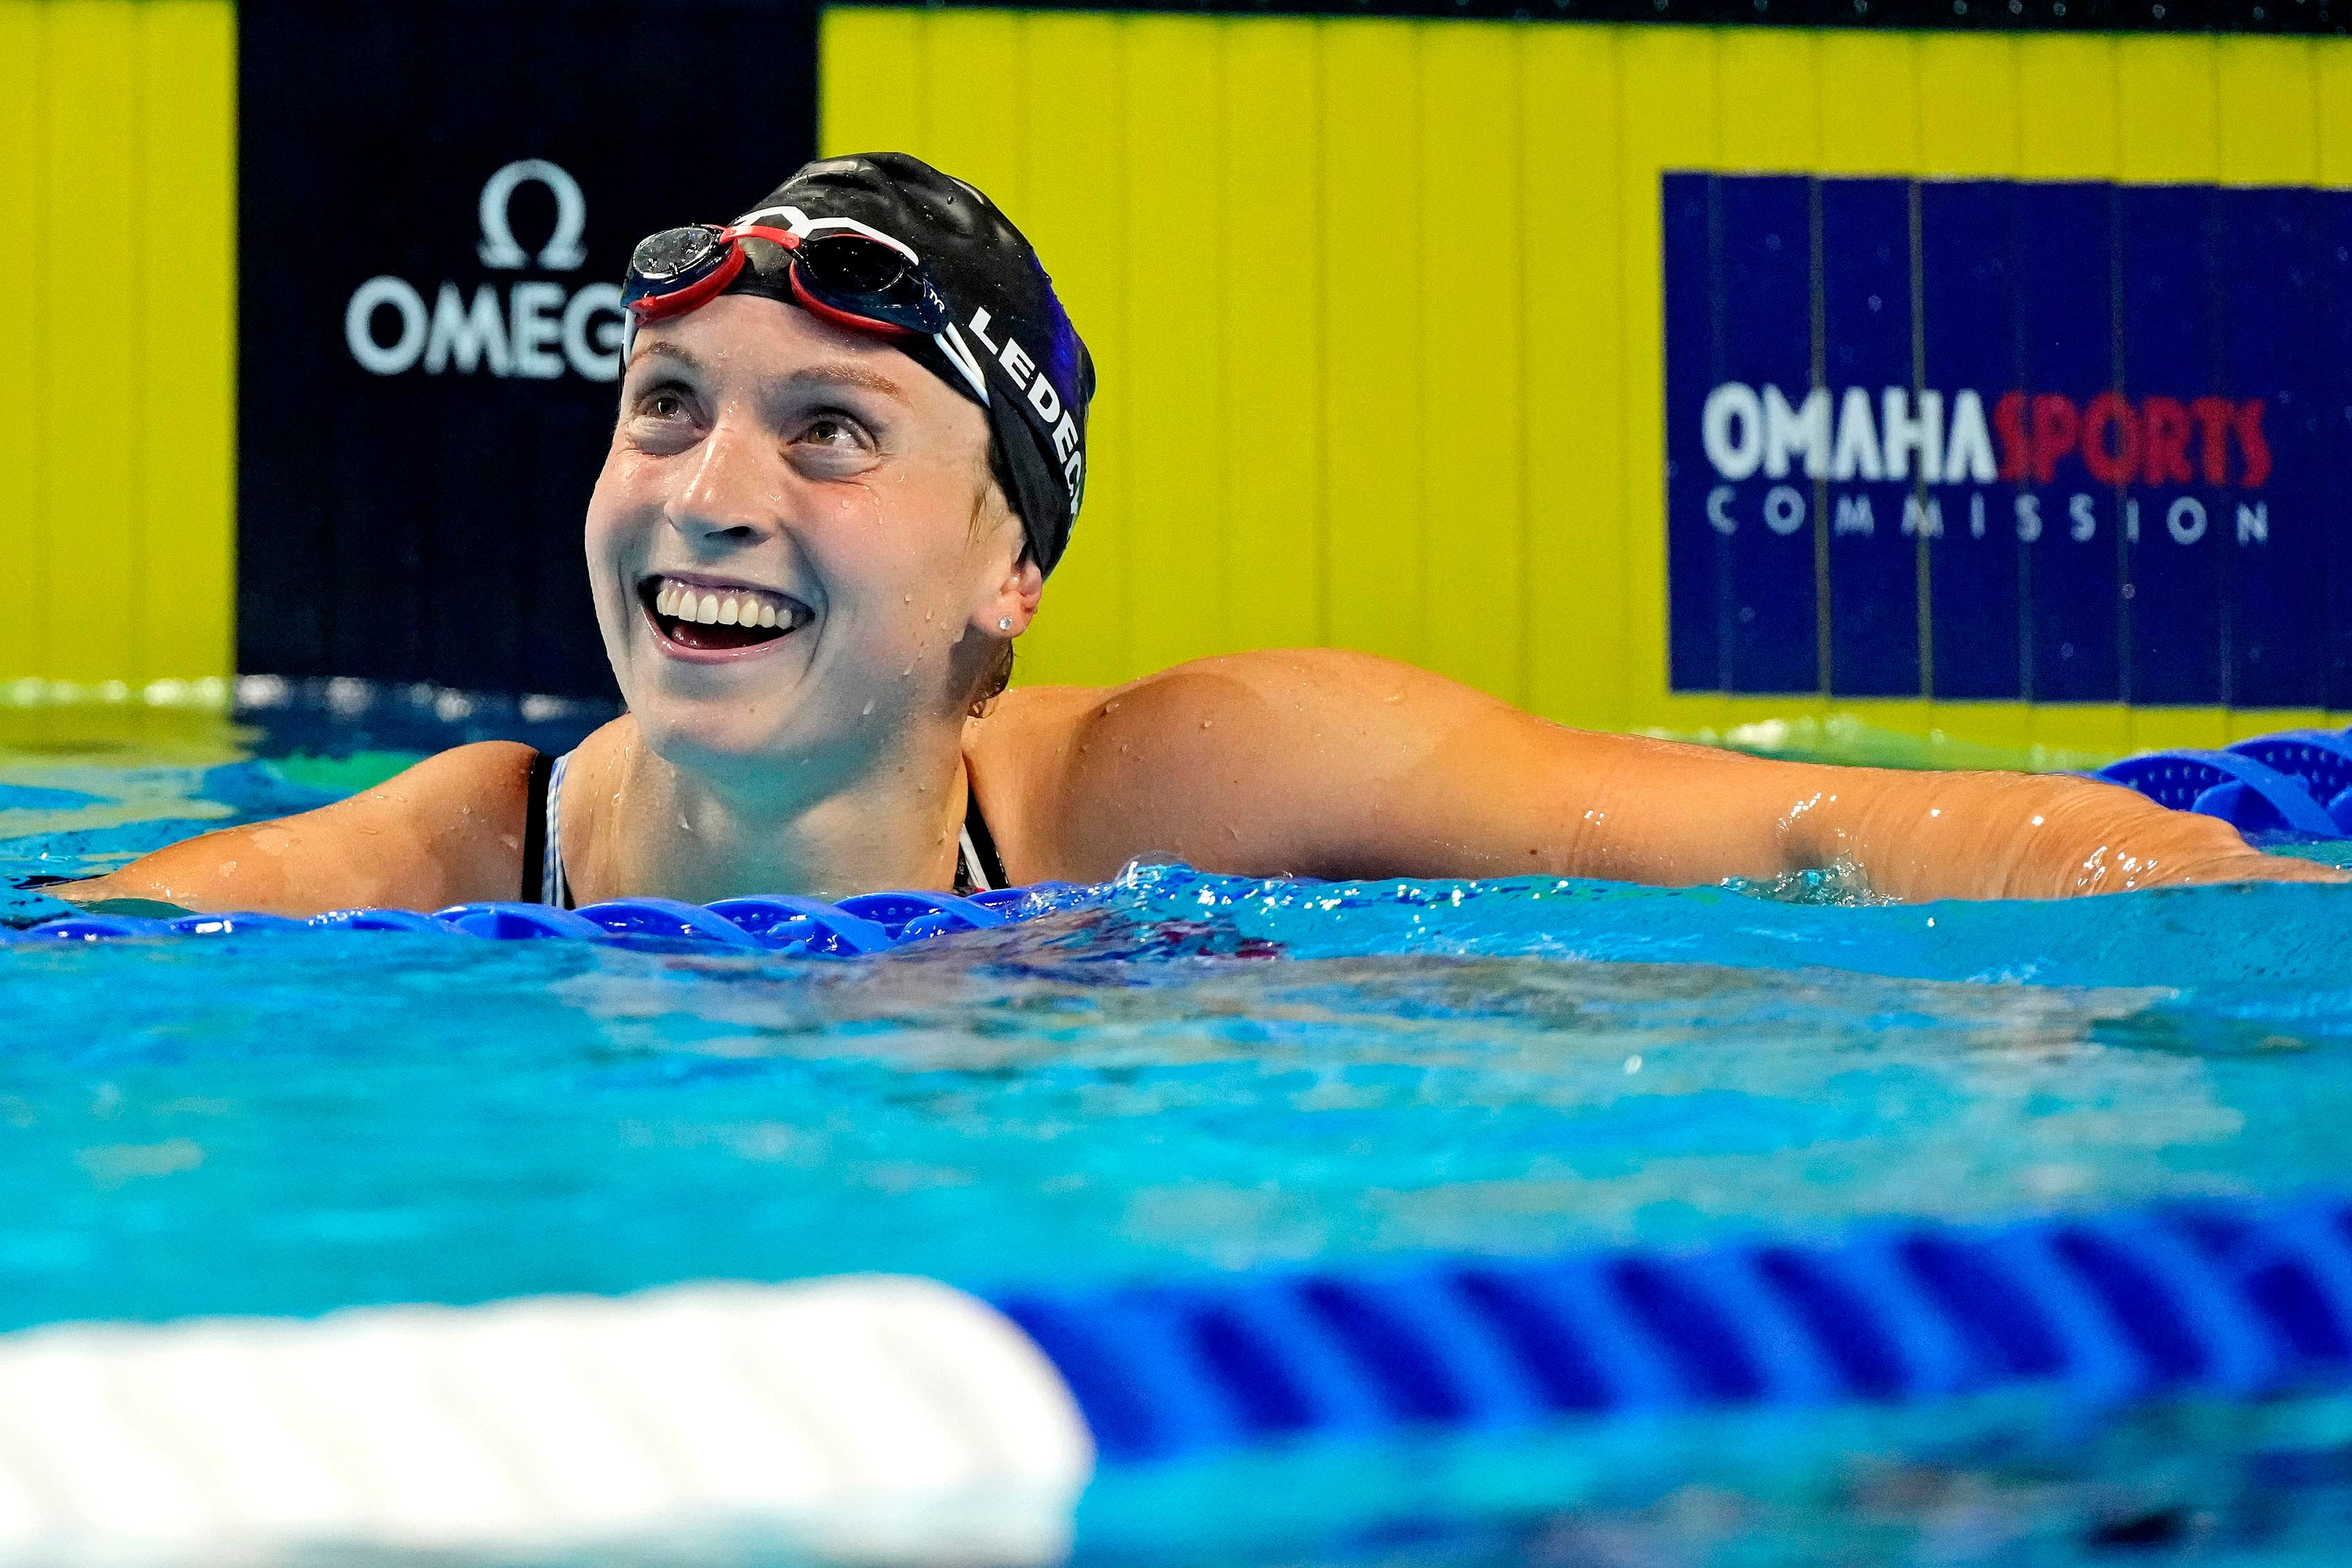 Katie Ledecky wins gold in 800 free, capping her Summer Olympics with four medals